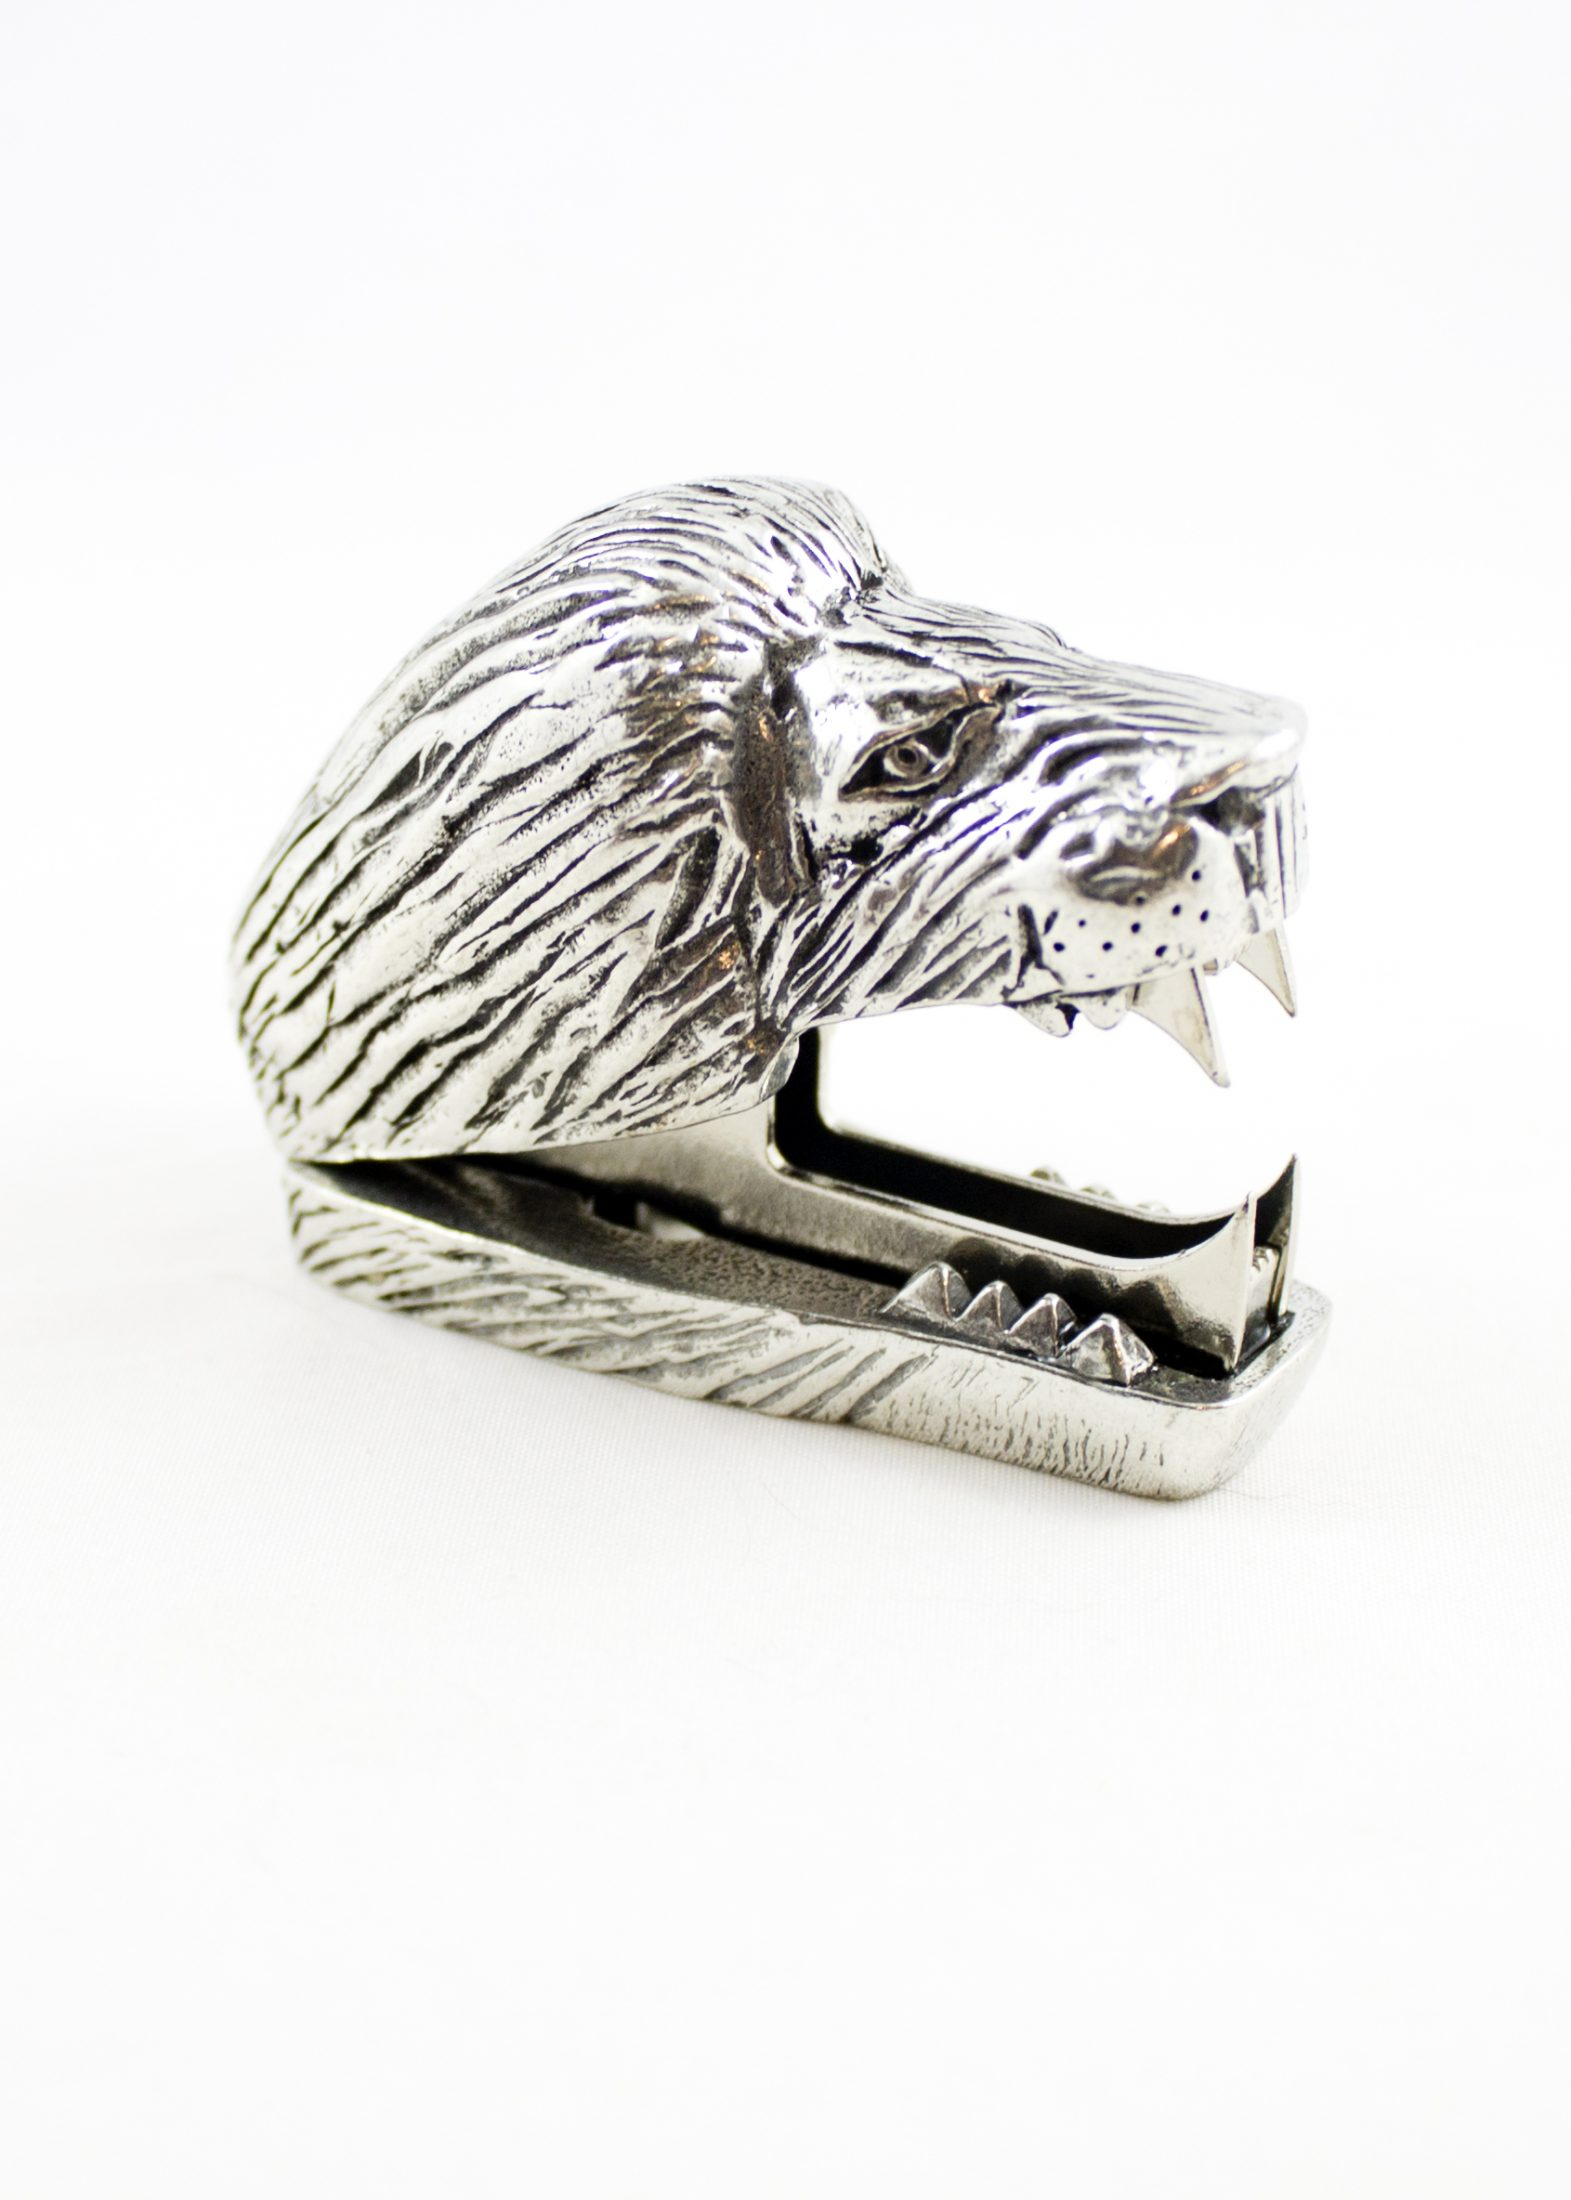 silver lion staple remover